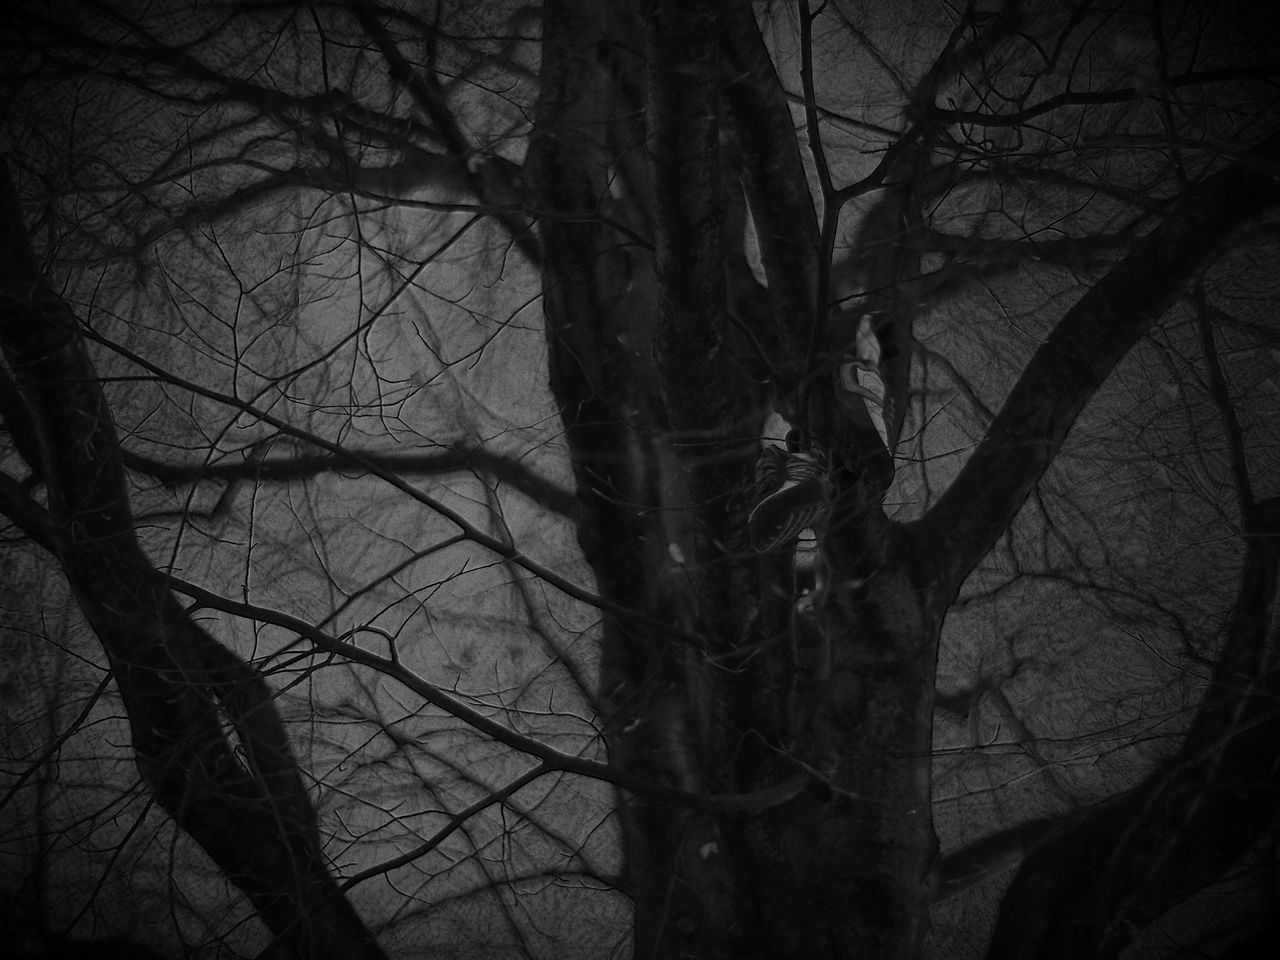 Hanging out... Tree Bare Tree Branch Tree Trunk Forest Nature Tranquility No People Outdoors Sky Sneakers Shallow Depth Of Field Blackandwhite Monochrome Black And White Black & White Nightphotography Night Photography